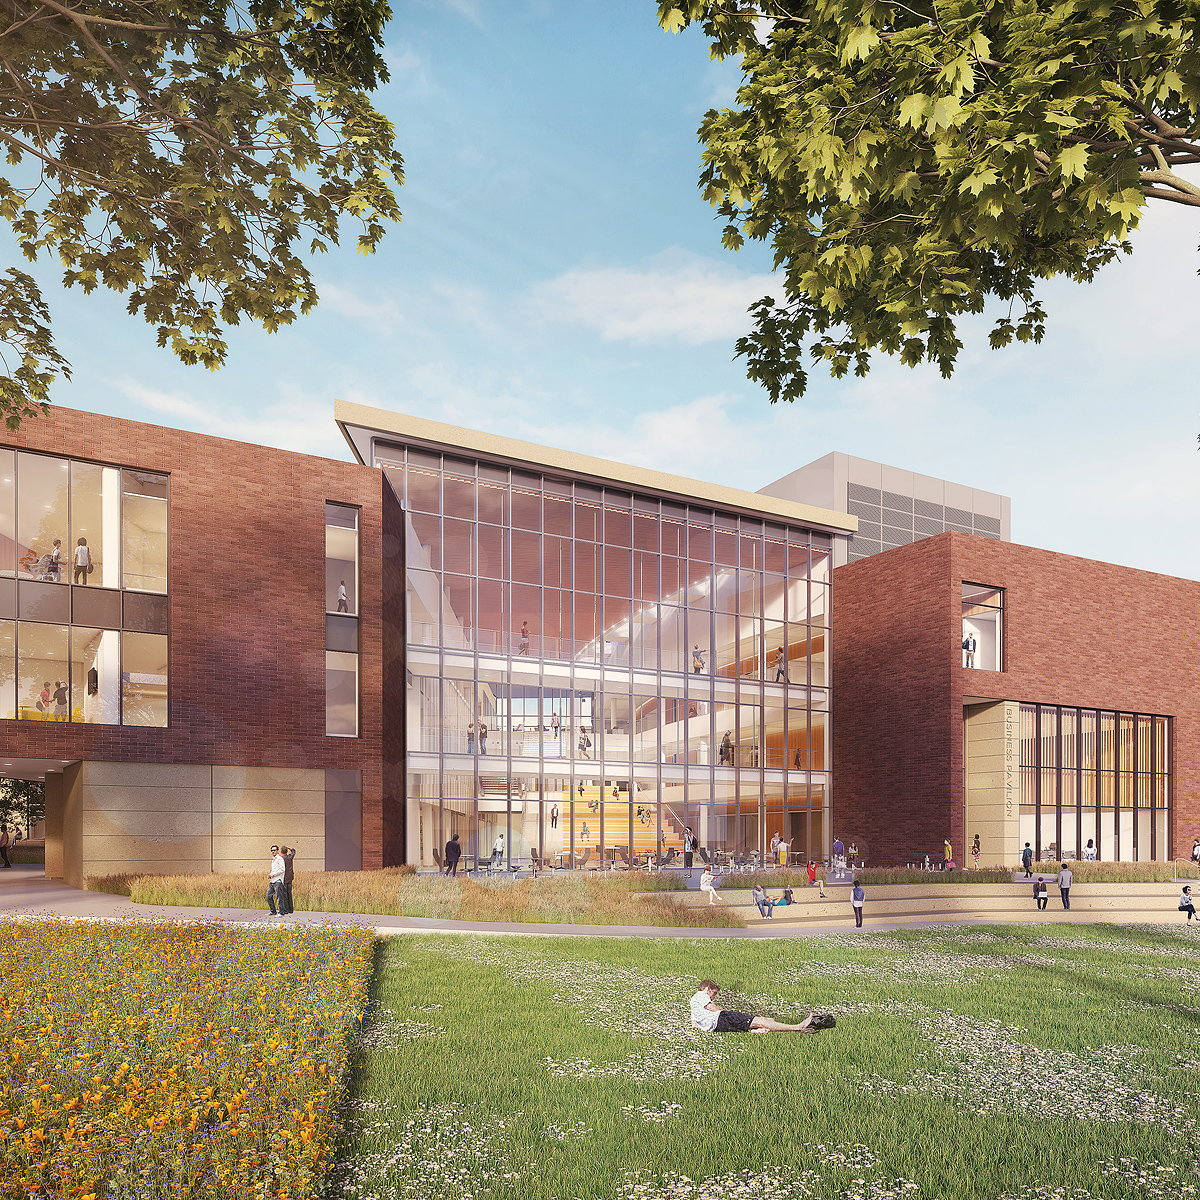 MSU Broad College of Business Pavilion by LMN Architects Breaks Ground